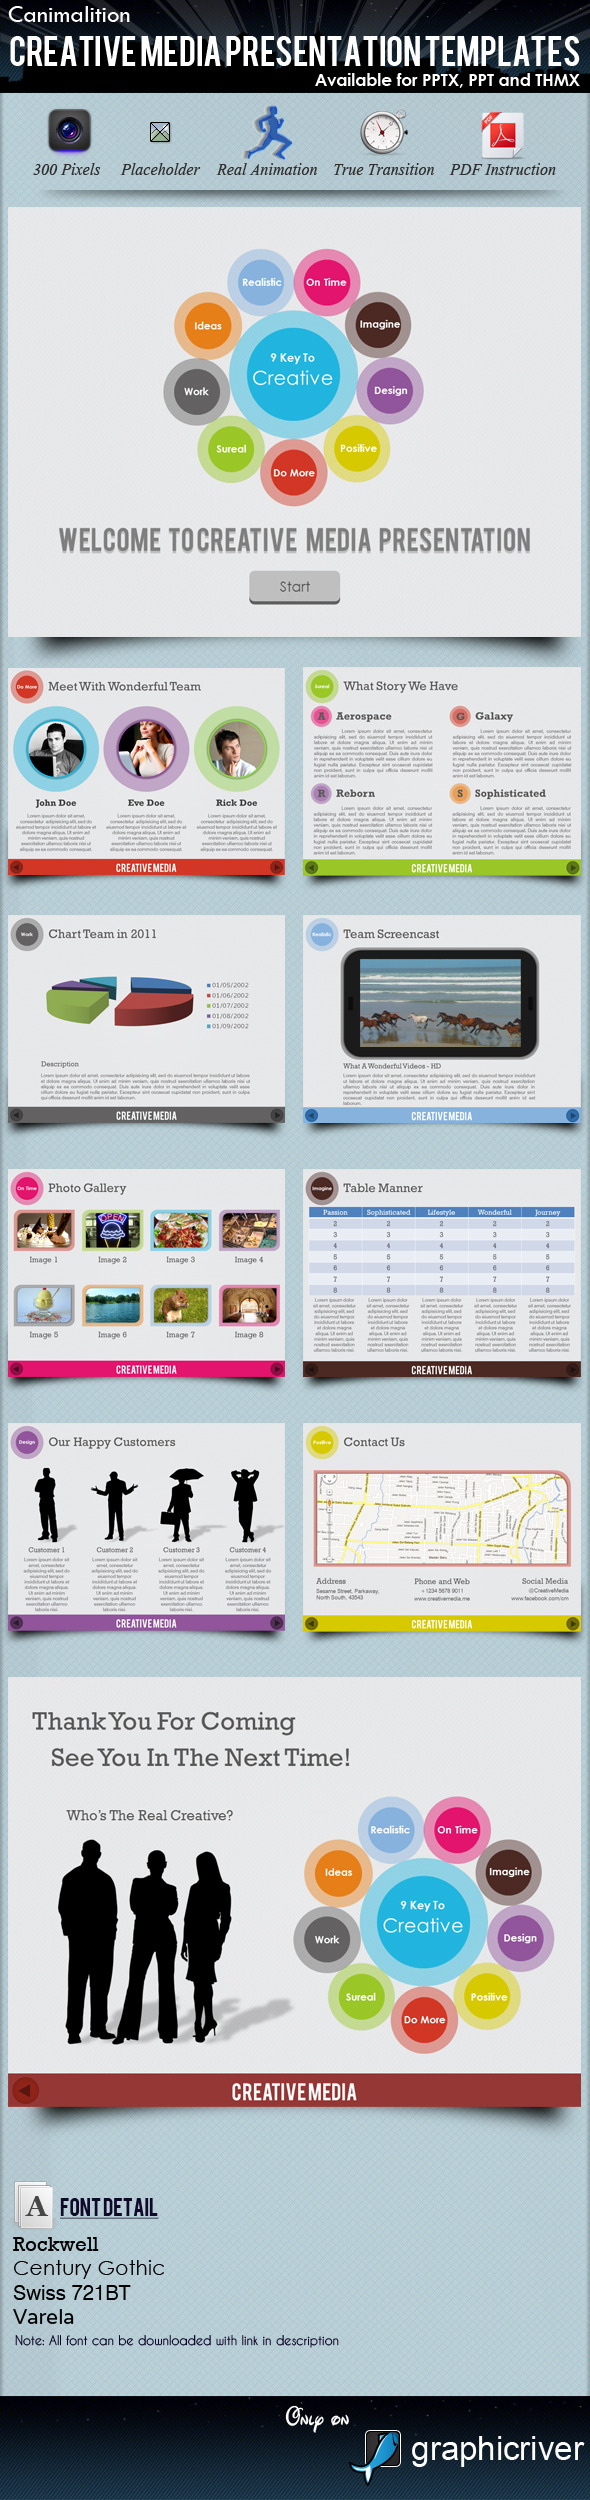 Creative Media Presentation Templates - Creative PowerPoint Templates